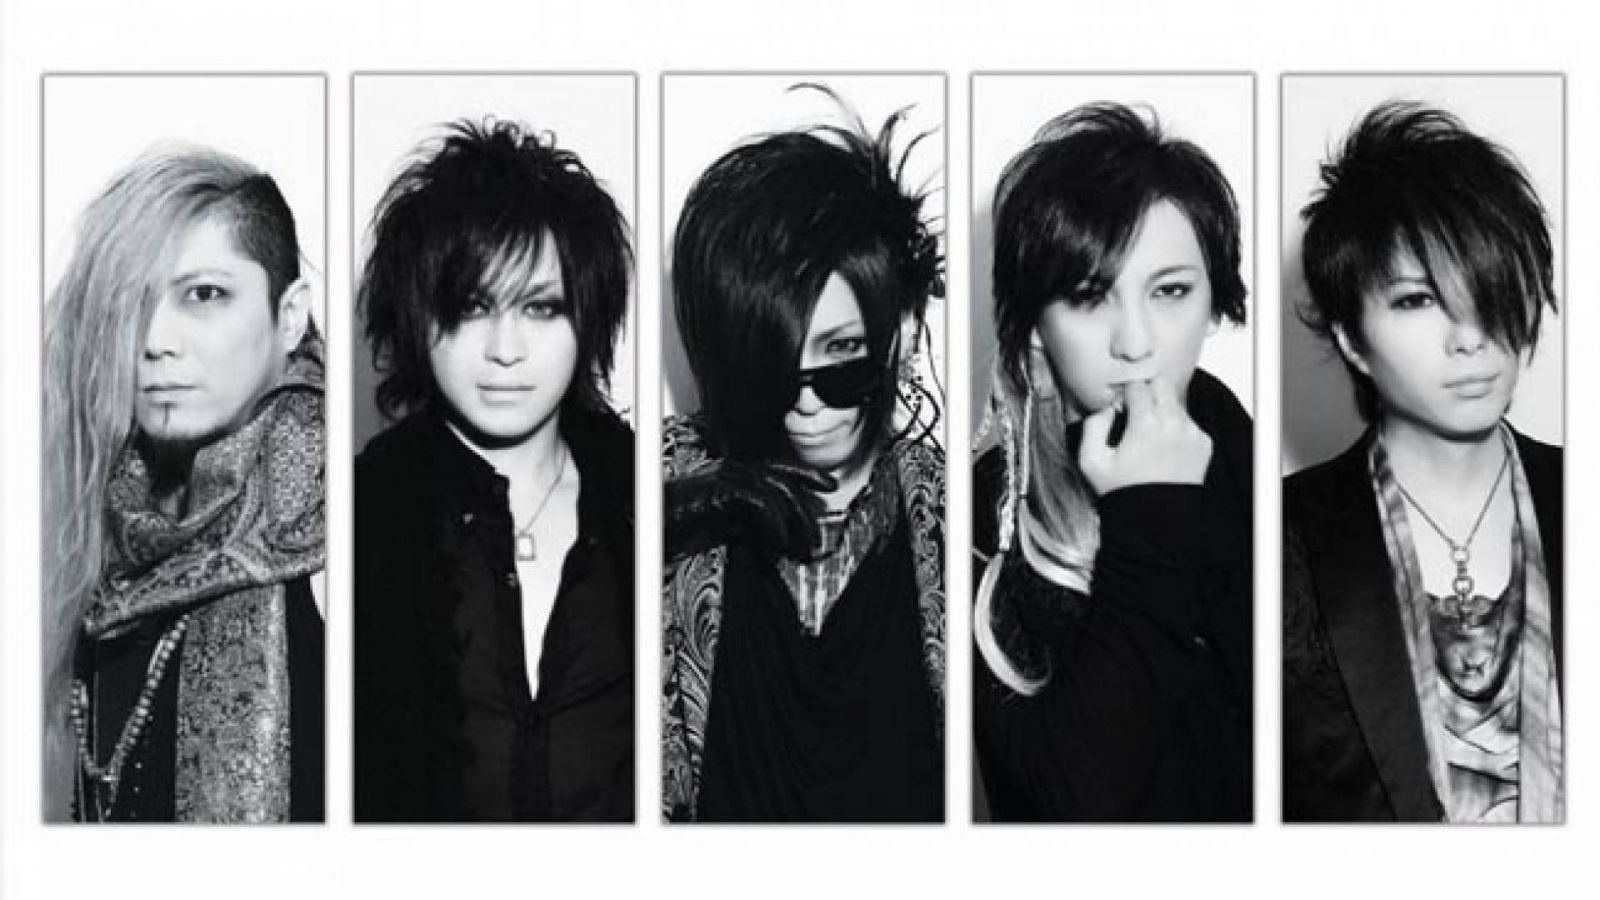 Happy Anniversary from THE MICRO HEAD 4N'S © Massive One Inc. THE MICRO HEAD 4N'S All Rights Reserved